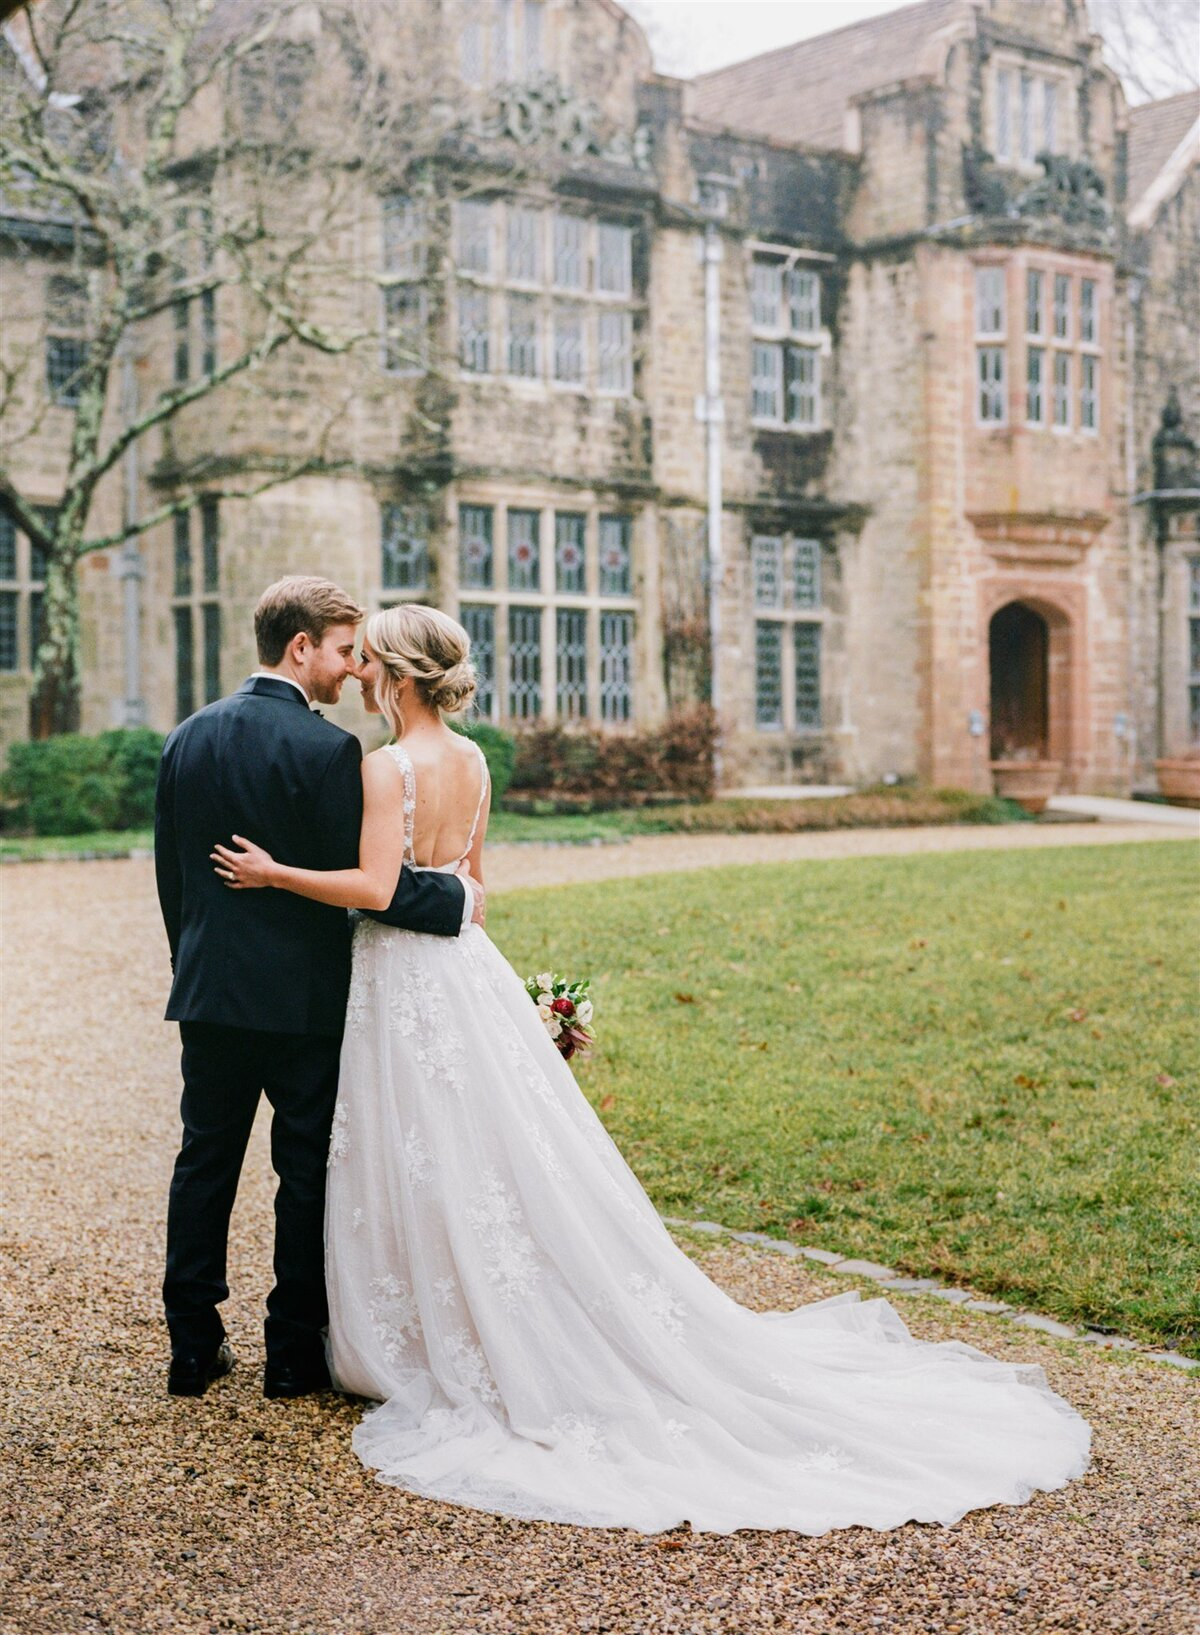 VictoriaHeerPhotography(c)_Caitlyn+Jake_Wedding_Film_049